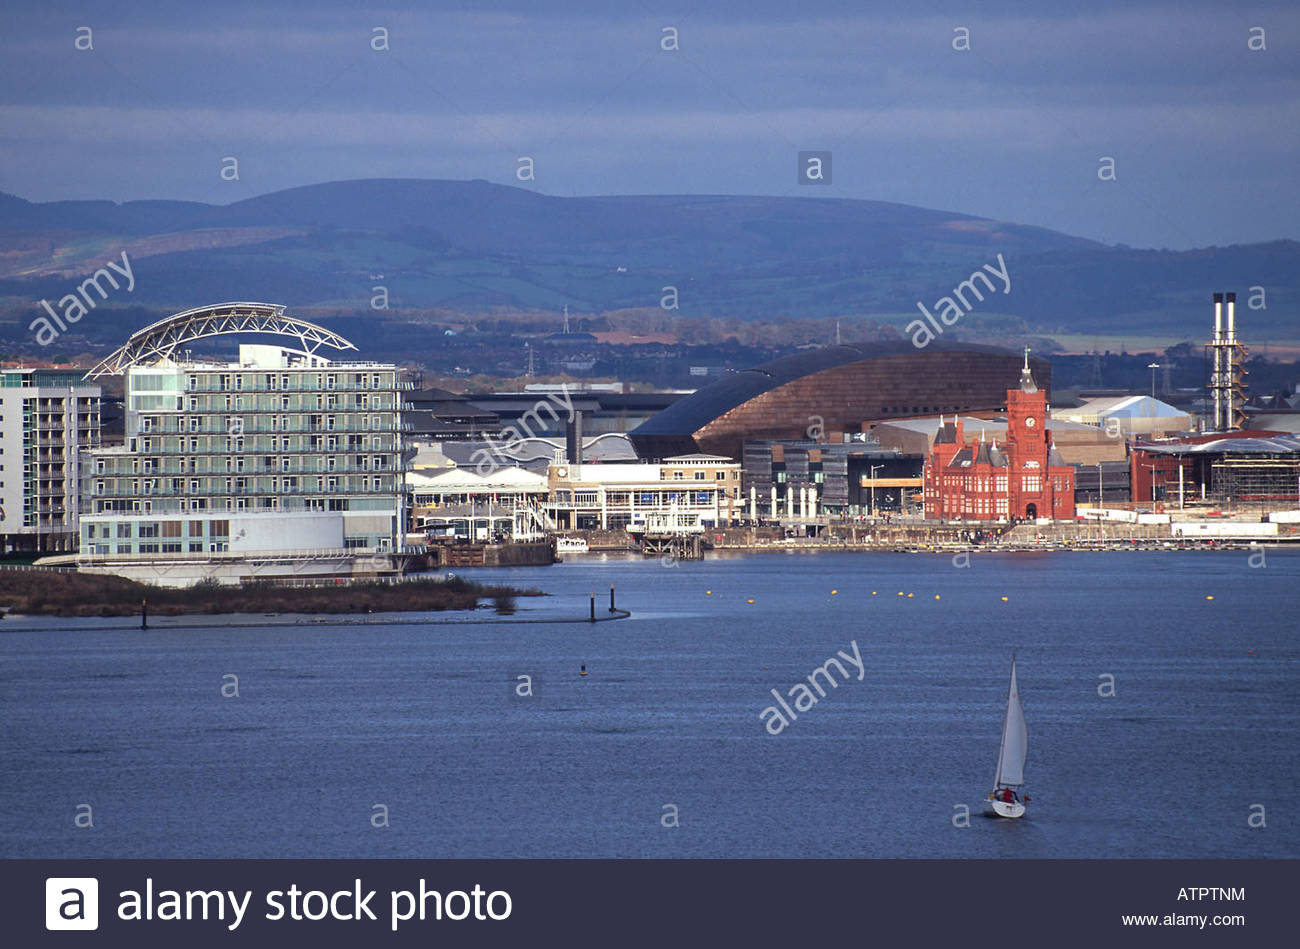 Cardiff Bay South Wales, cardiff bay from penarth waterfront tiger bay man made harbour ...